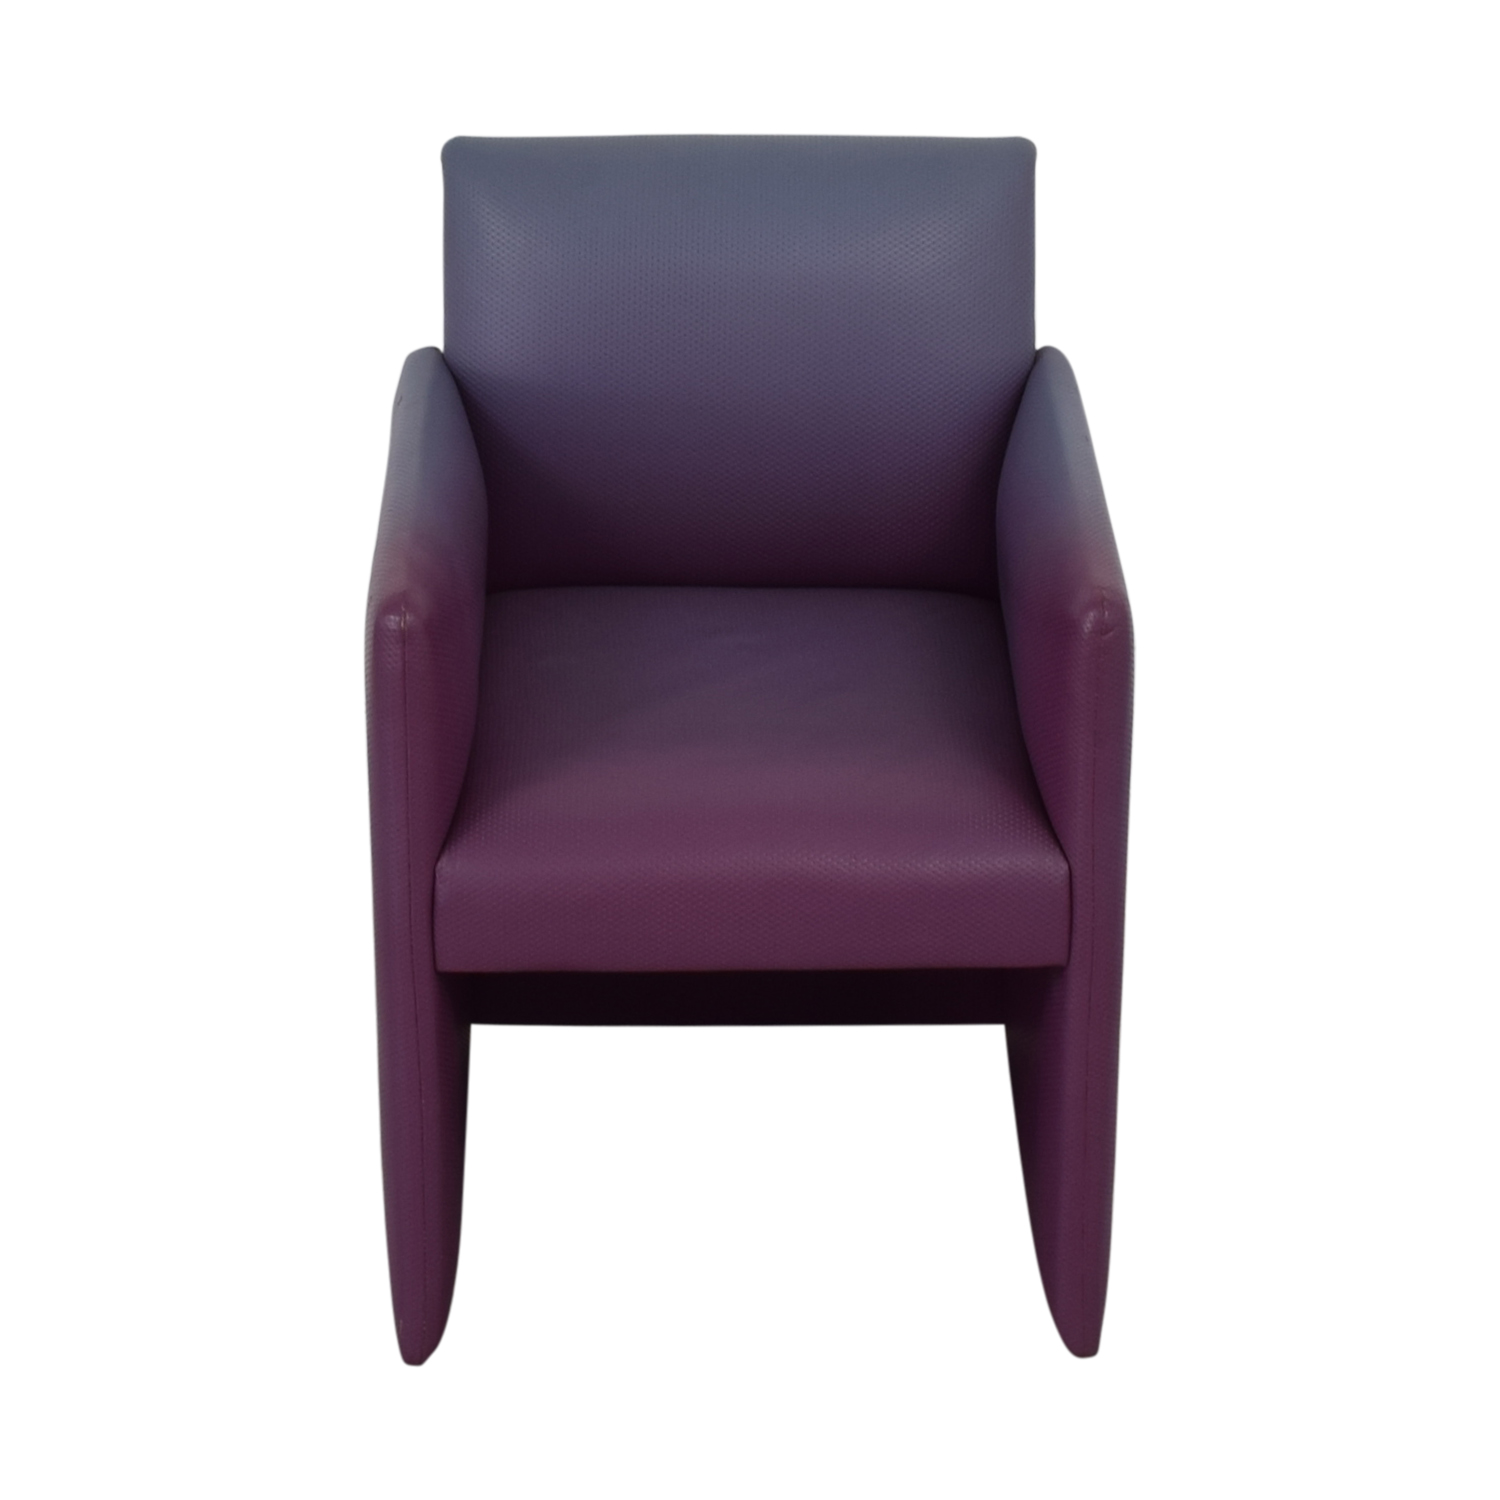 shop Furniture Masters Purple Accent Chair Furniture Masters Accent Chairs